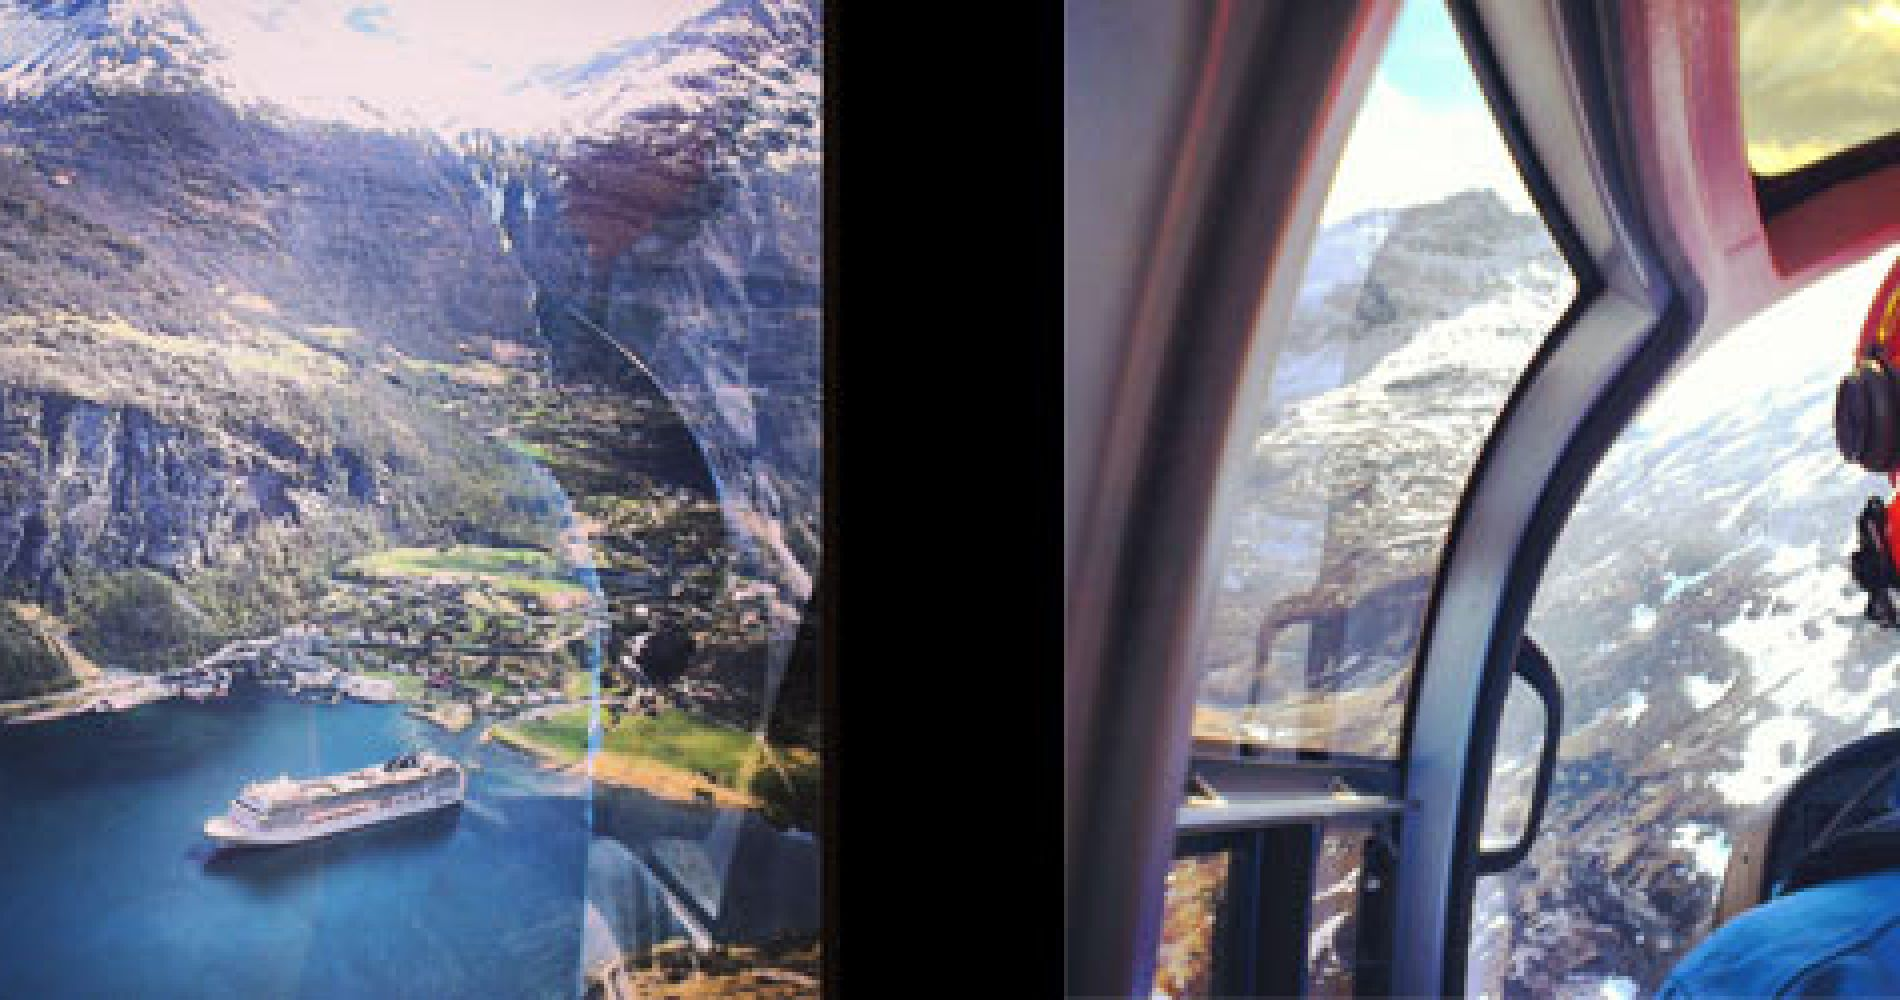 Helicopter flight over Geiranger